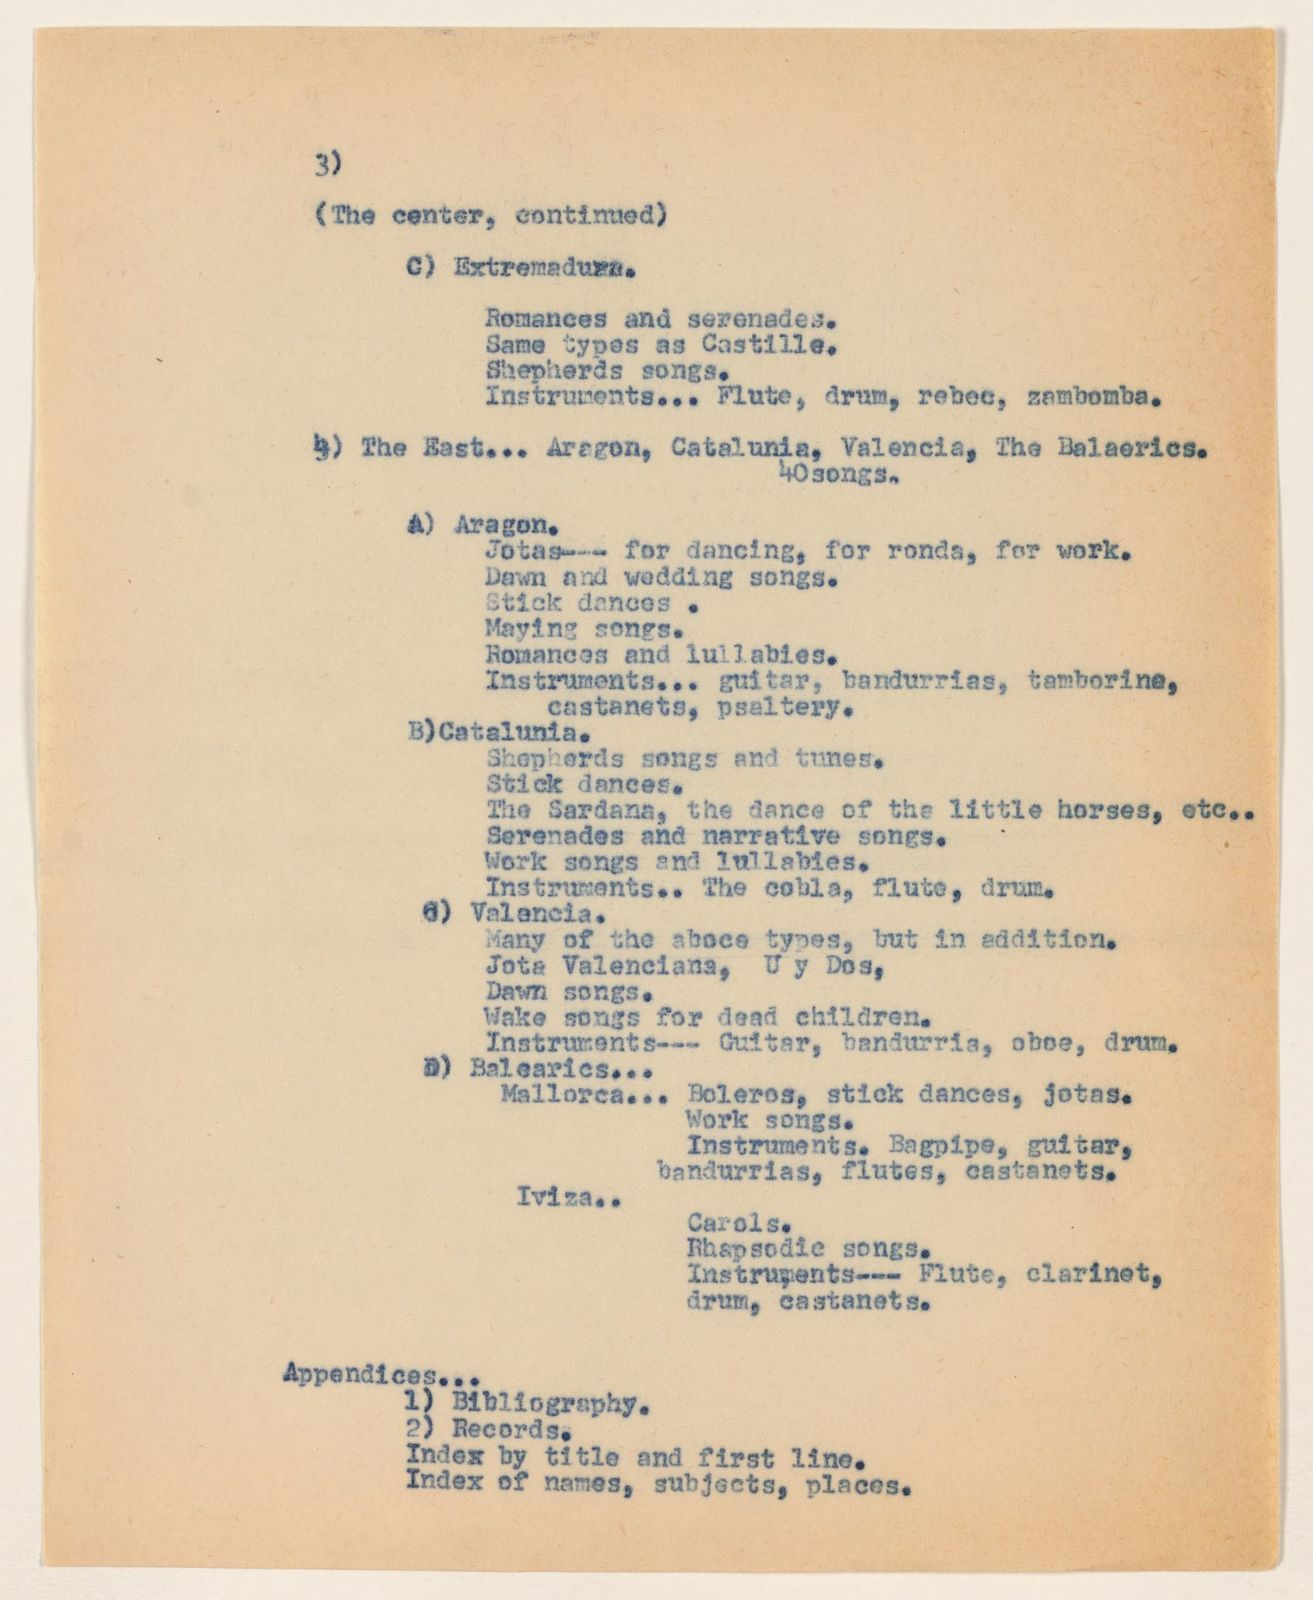 Alan Lomax Collection, Manuscripts, Spain, 1952-1953